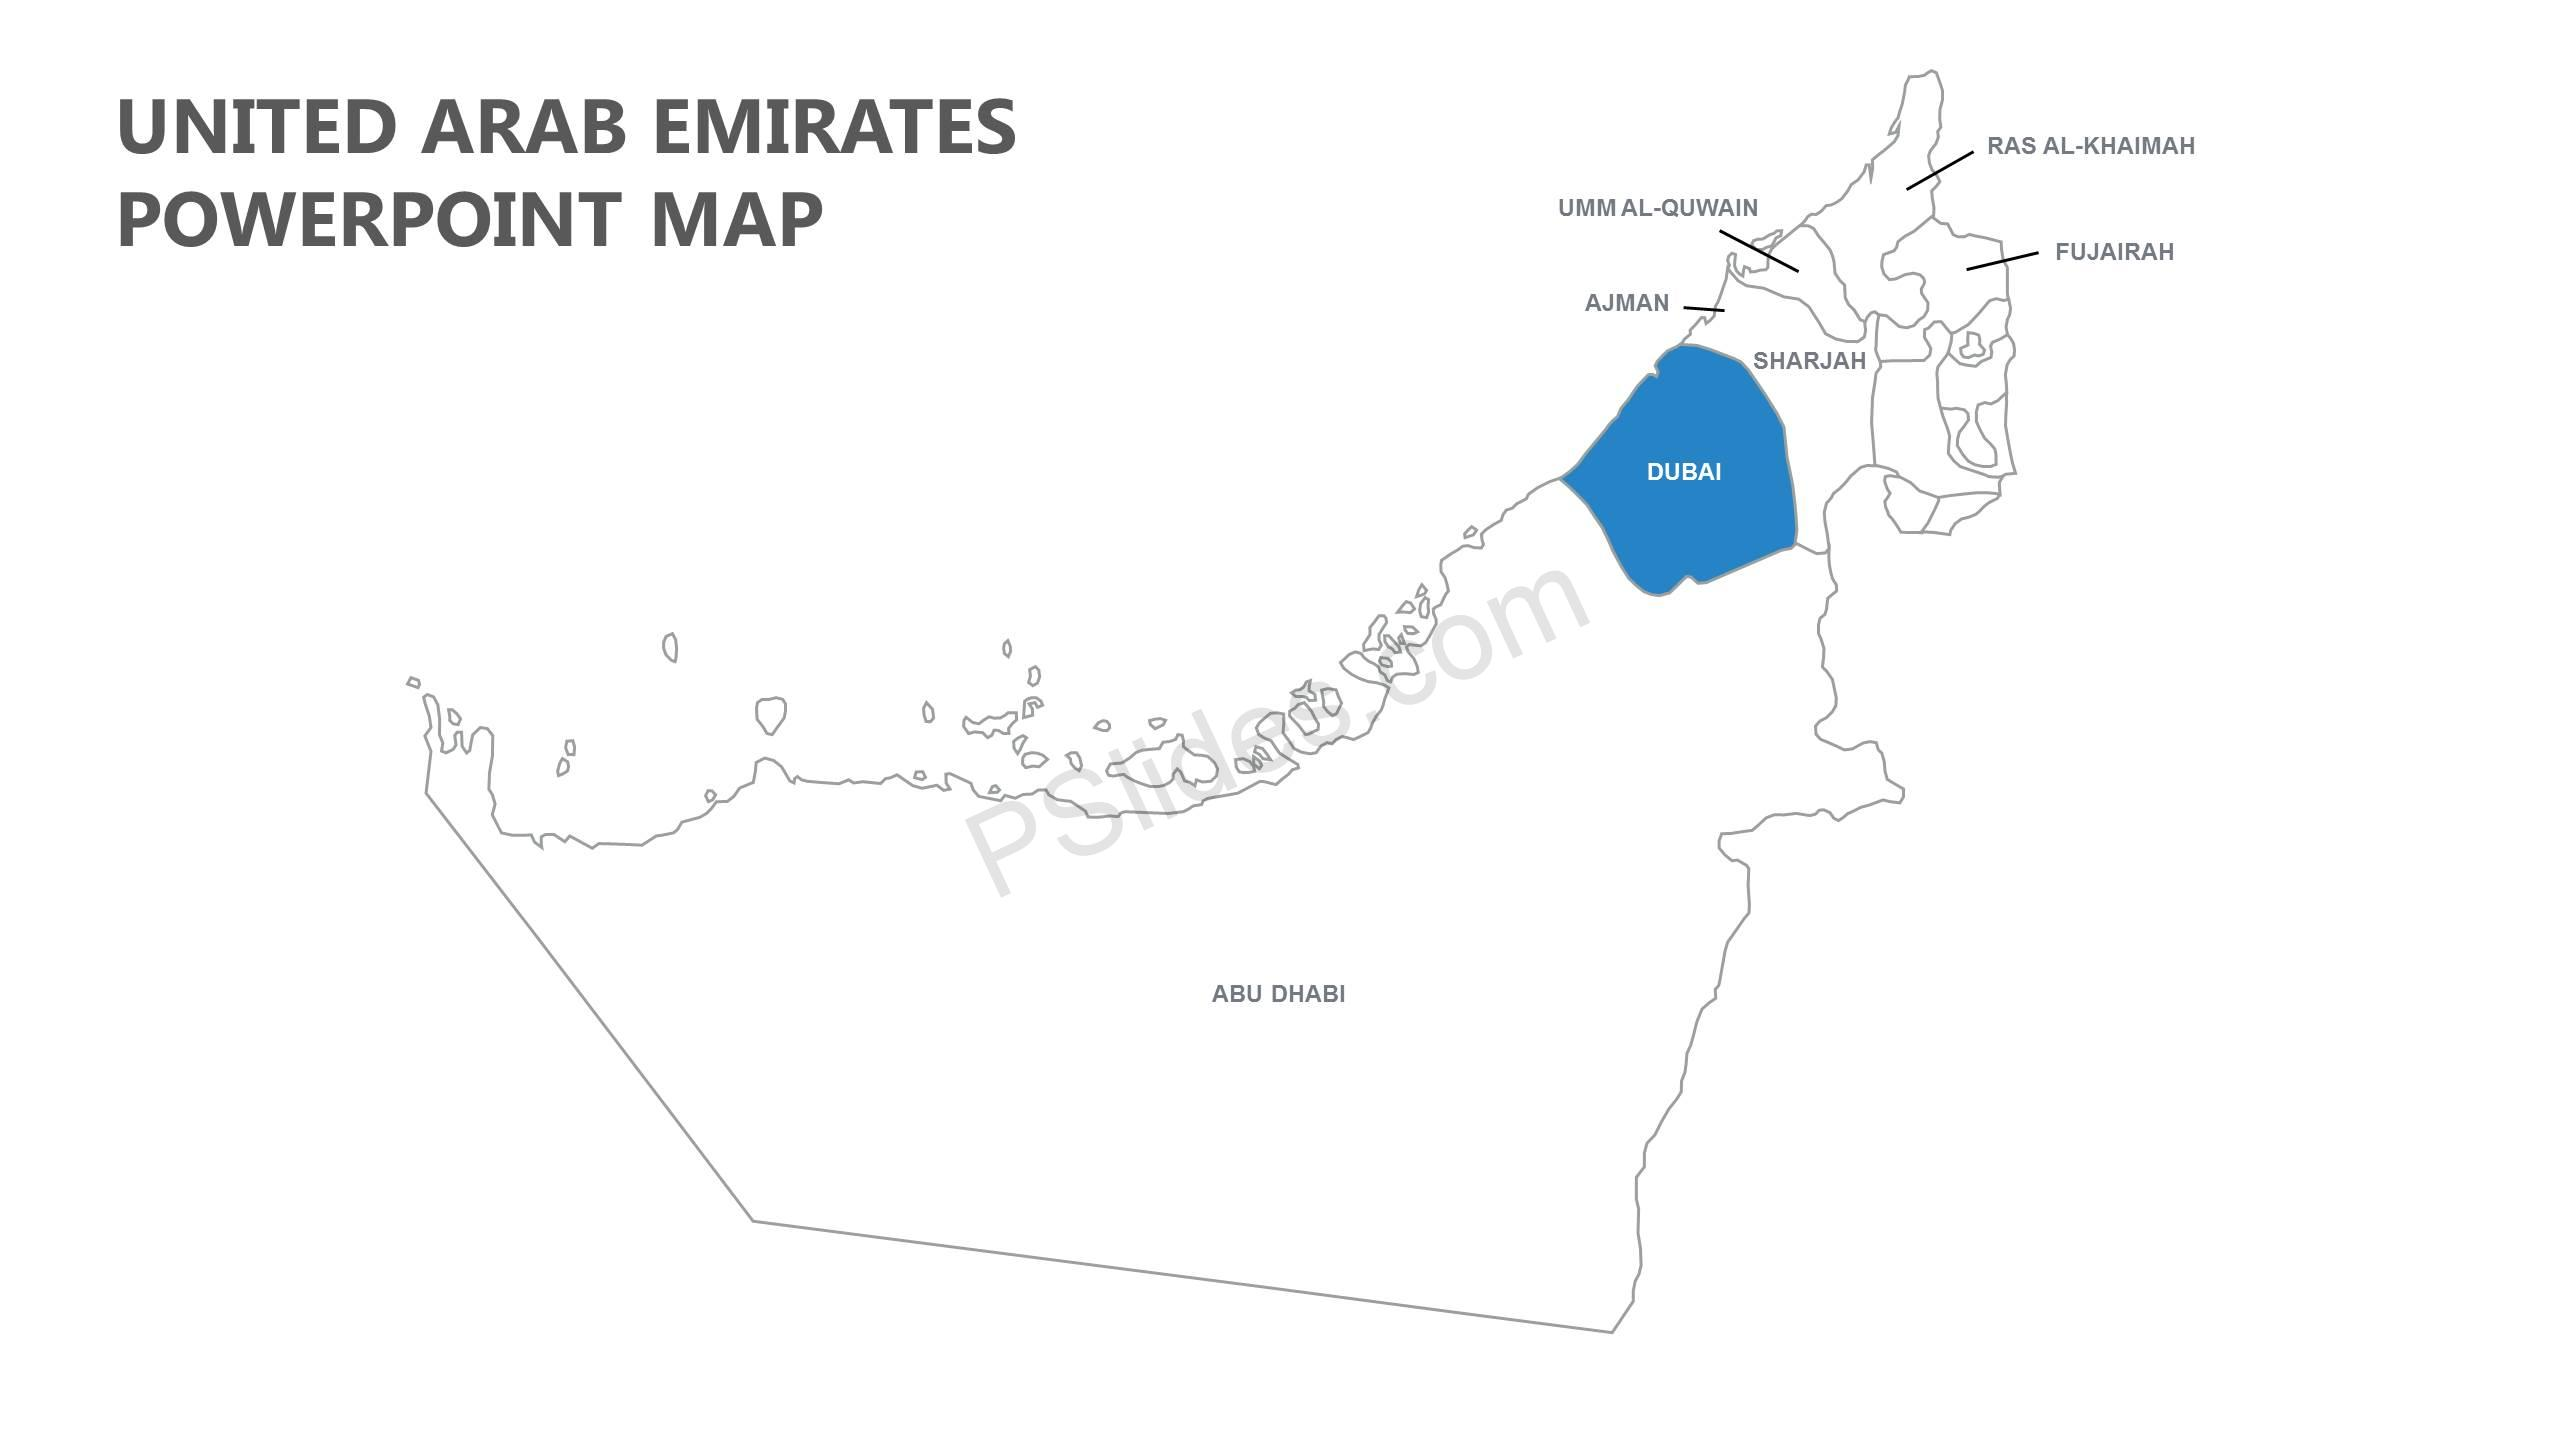 United Arab Emirates PowerPoint Map - PSlides on map of algeria, middle east, ras al-khaimah, burj al-arab, united states of america, map of bhutan, map of sudan, map of malaysia, arabian peninsula, persian gulf, map of iran, map of isle of man, map of ethiopia, map of dubai and surrounding countries, map of netherlands, abu dhabi, burj khalifa, map of montenegro, saudi arabia, map of singapore, map of pakistan, map of hungary, map of oman, map of venezuela, map of bosnia, map of bahrain, map of israel, map of armenia, map of denmark,